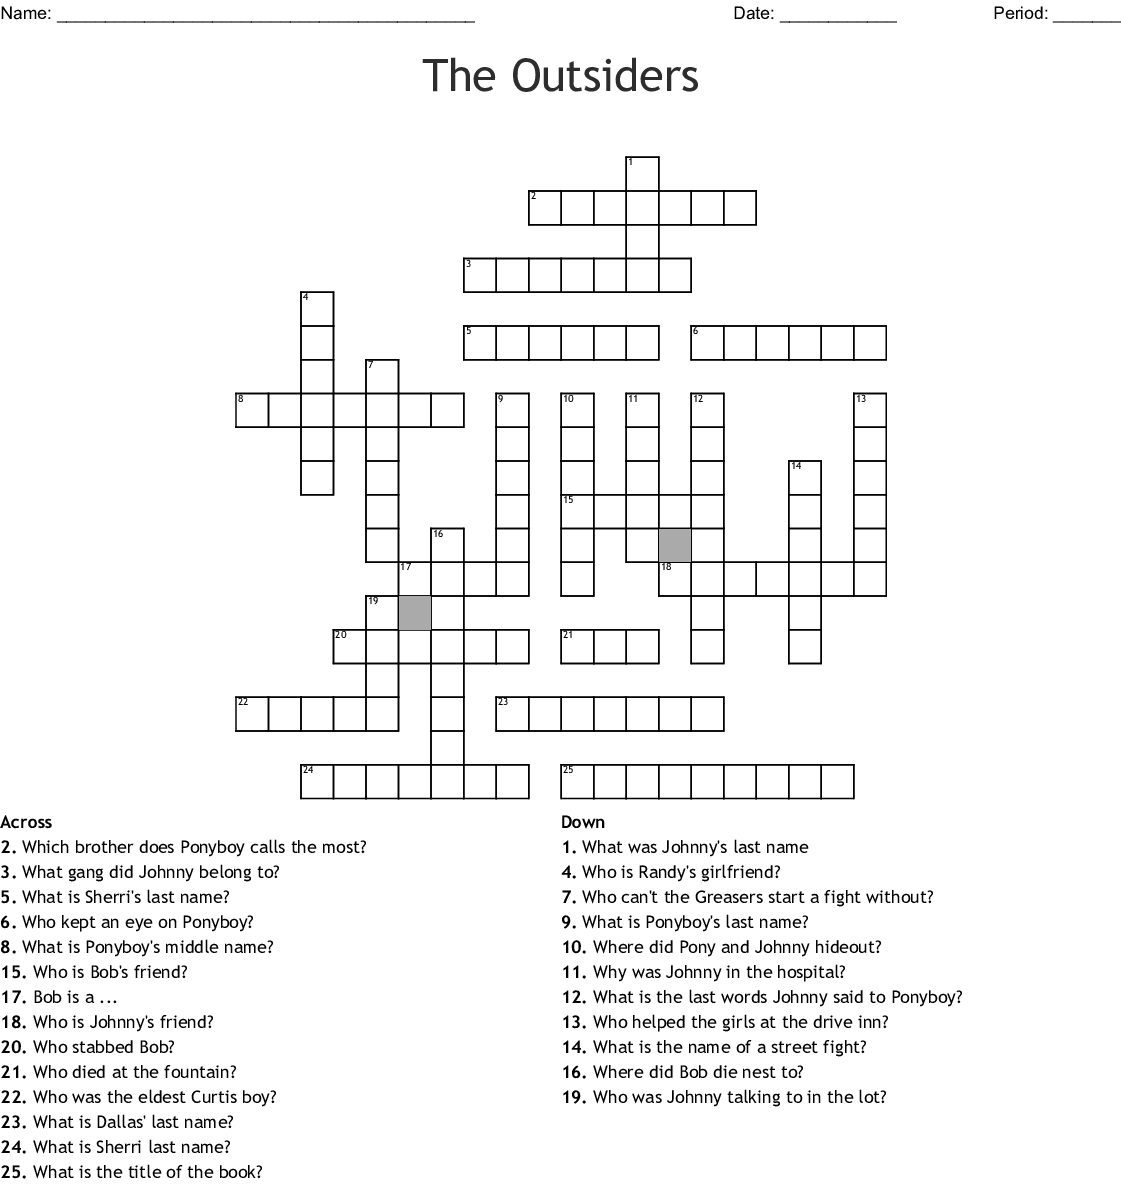 The Outsiders Crossword